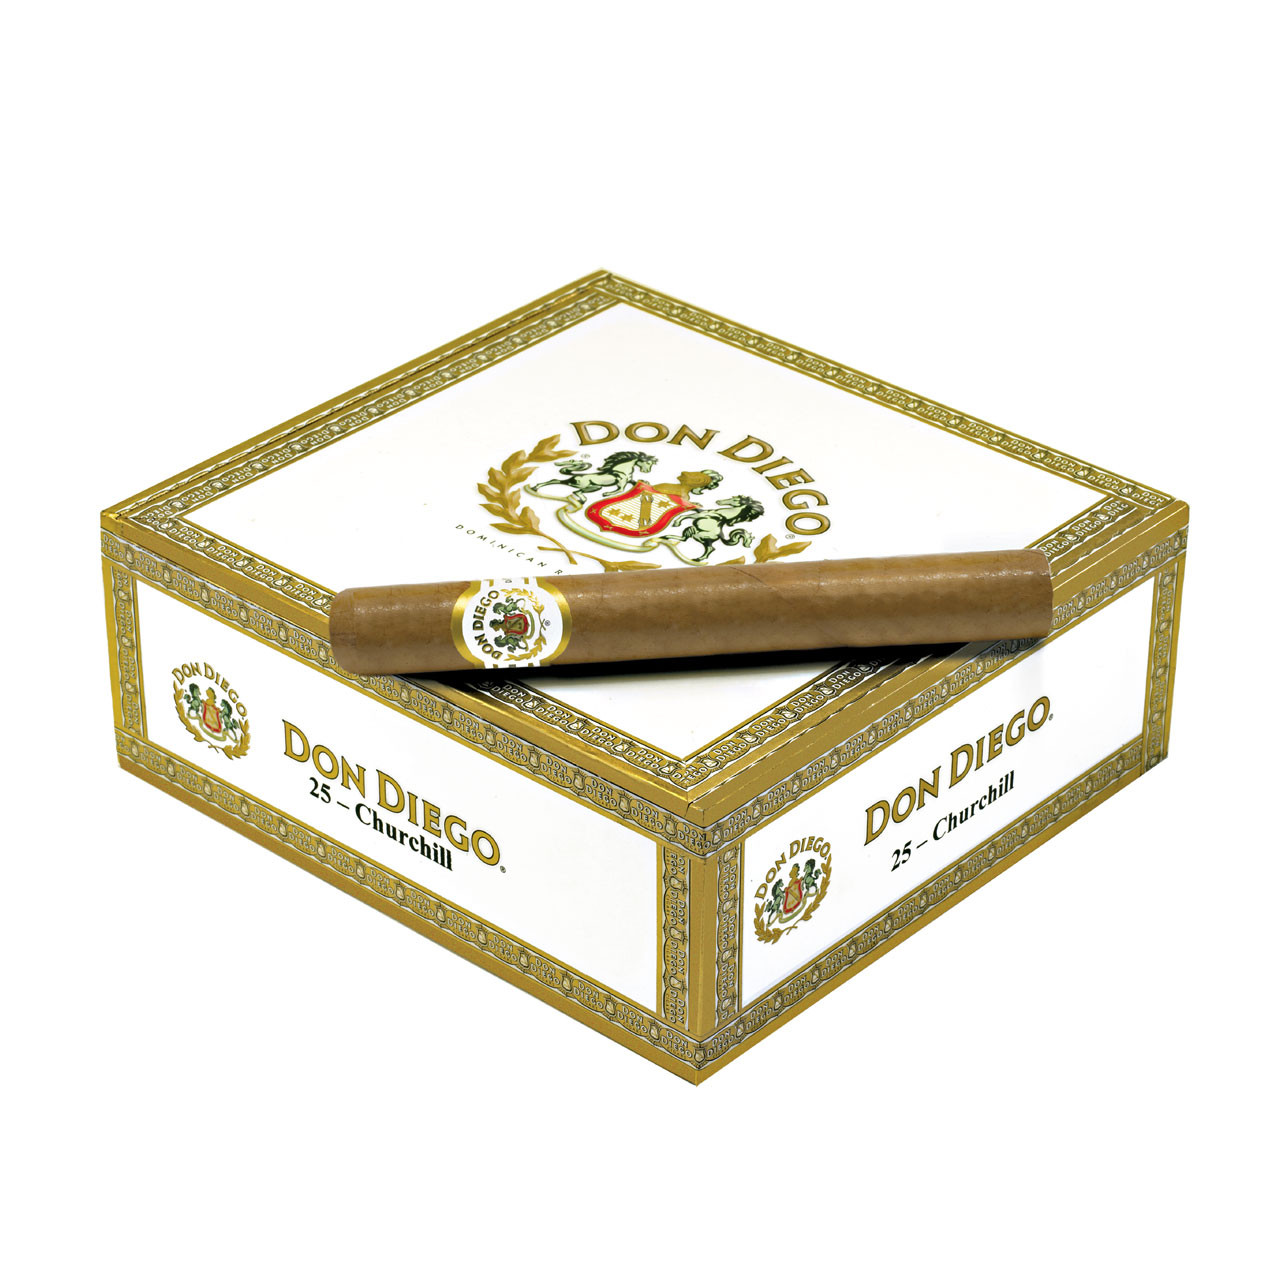 Shop Now Don Diego Corona Cigars - Natural Box of 27 --> Singles at $5.30, 5 Packs at $19.86, Boxes at $90.66